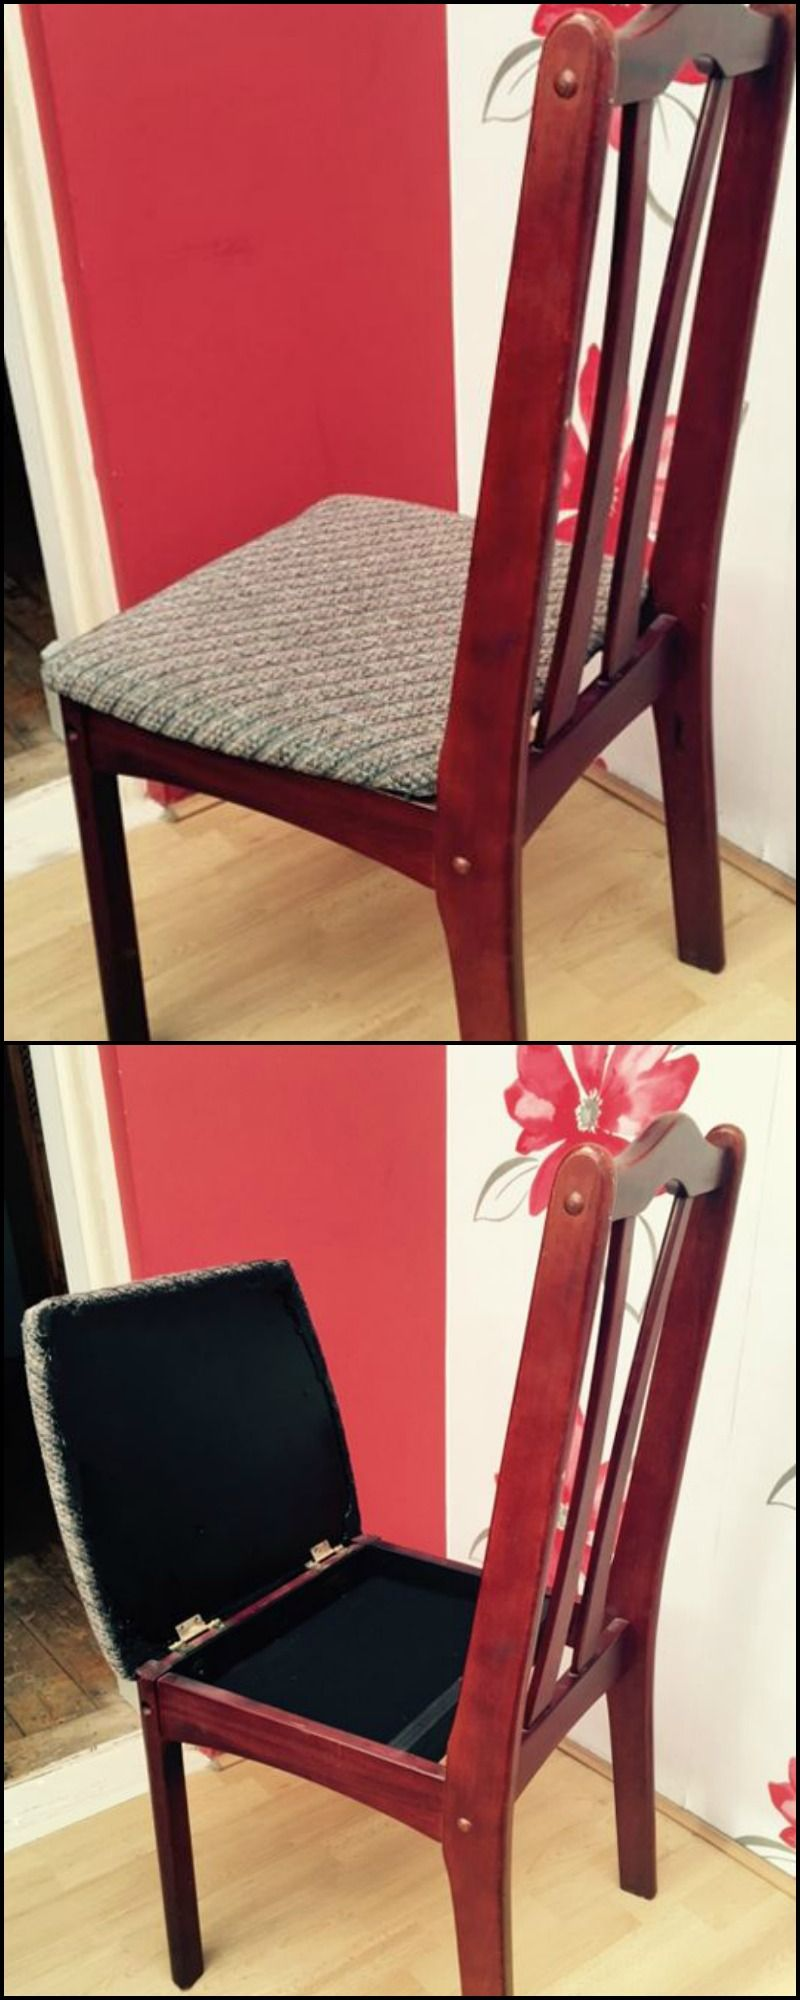 High Quality Make This Easy Hidden Compartment In Any Chair!